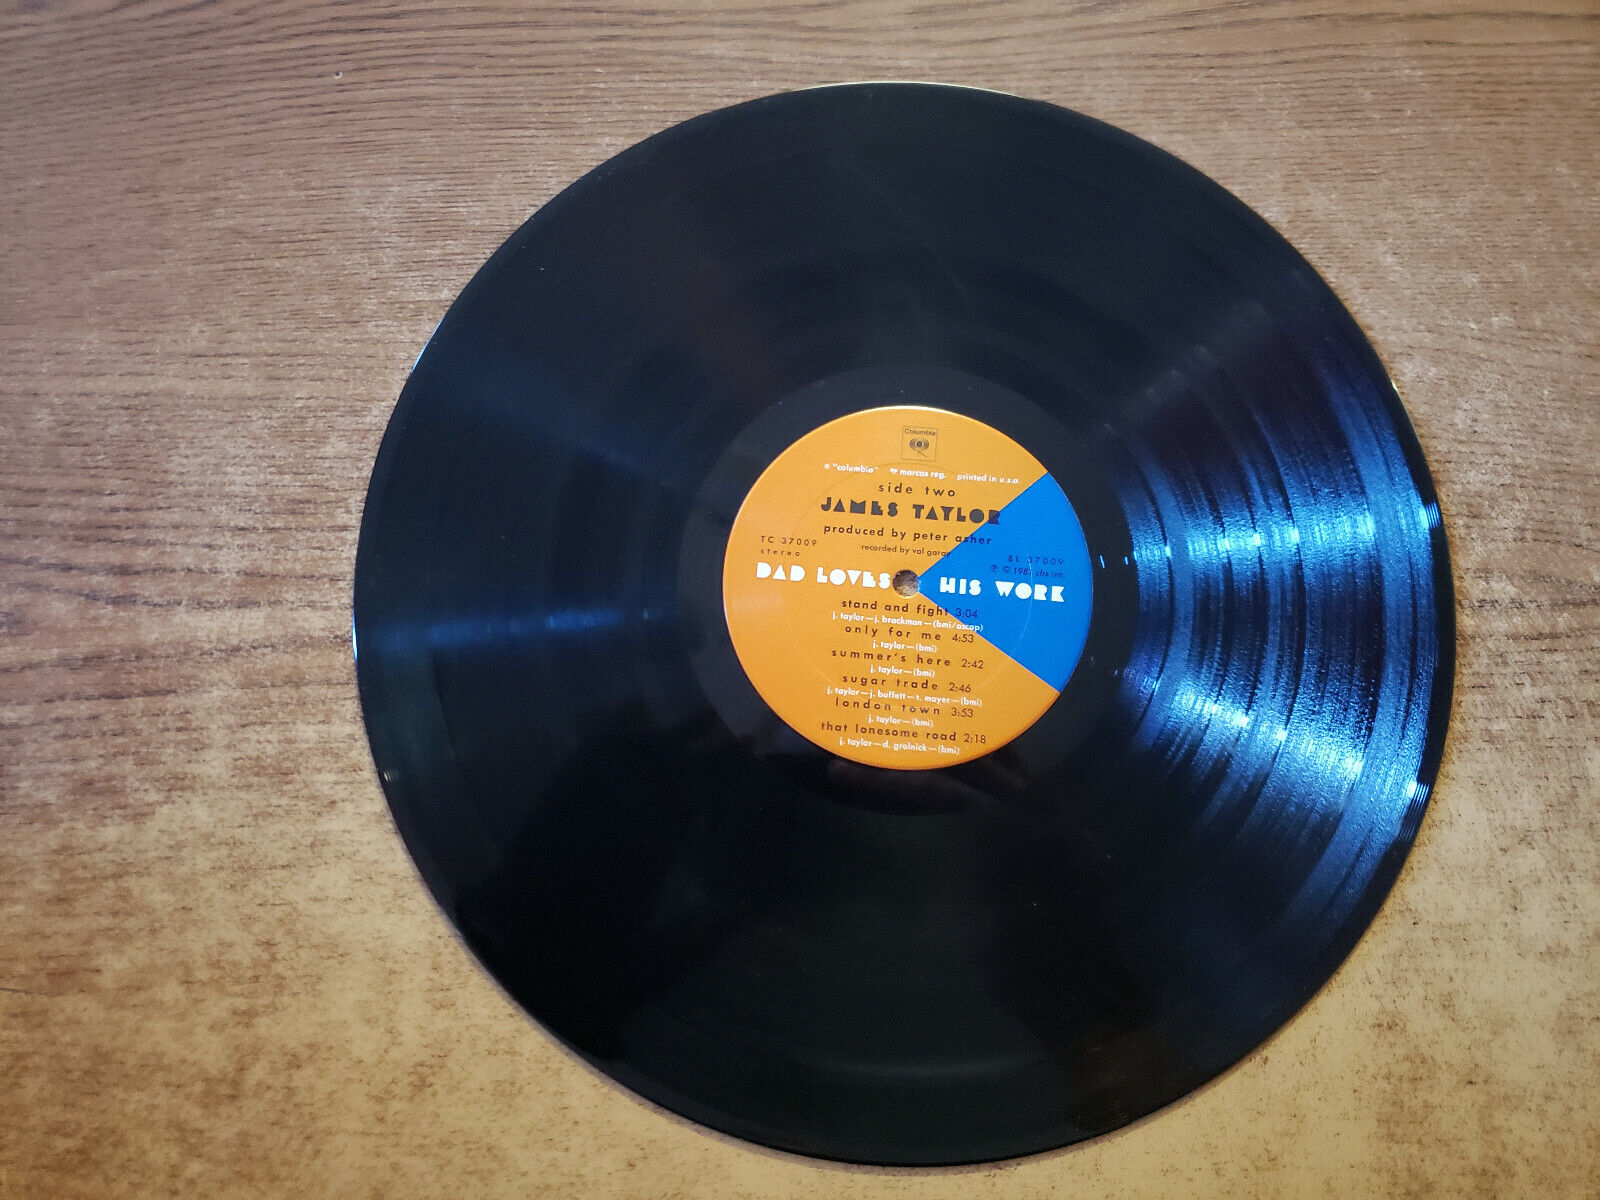 1981 MINT-EXC James Taylor, Dad Loves His Work 37009 LP33 - $9.99